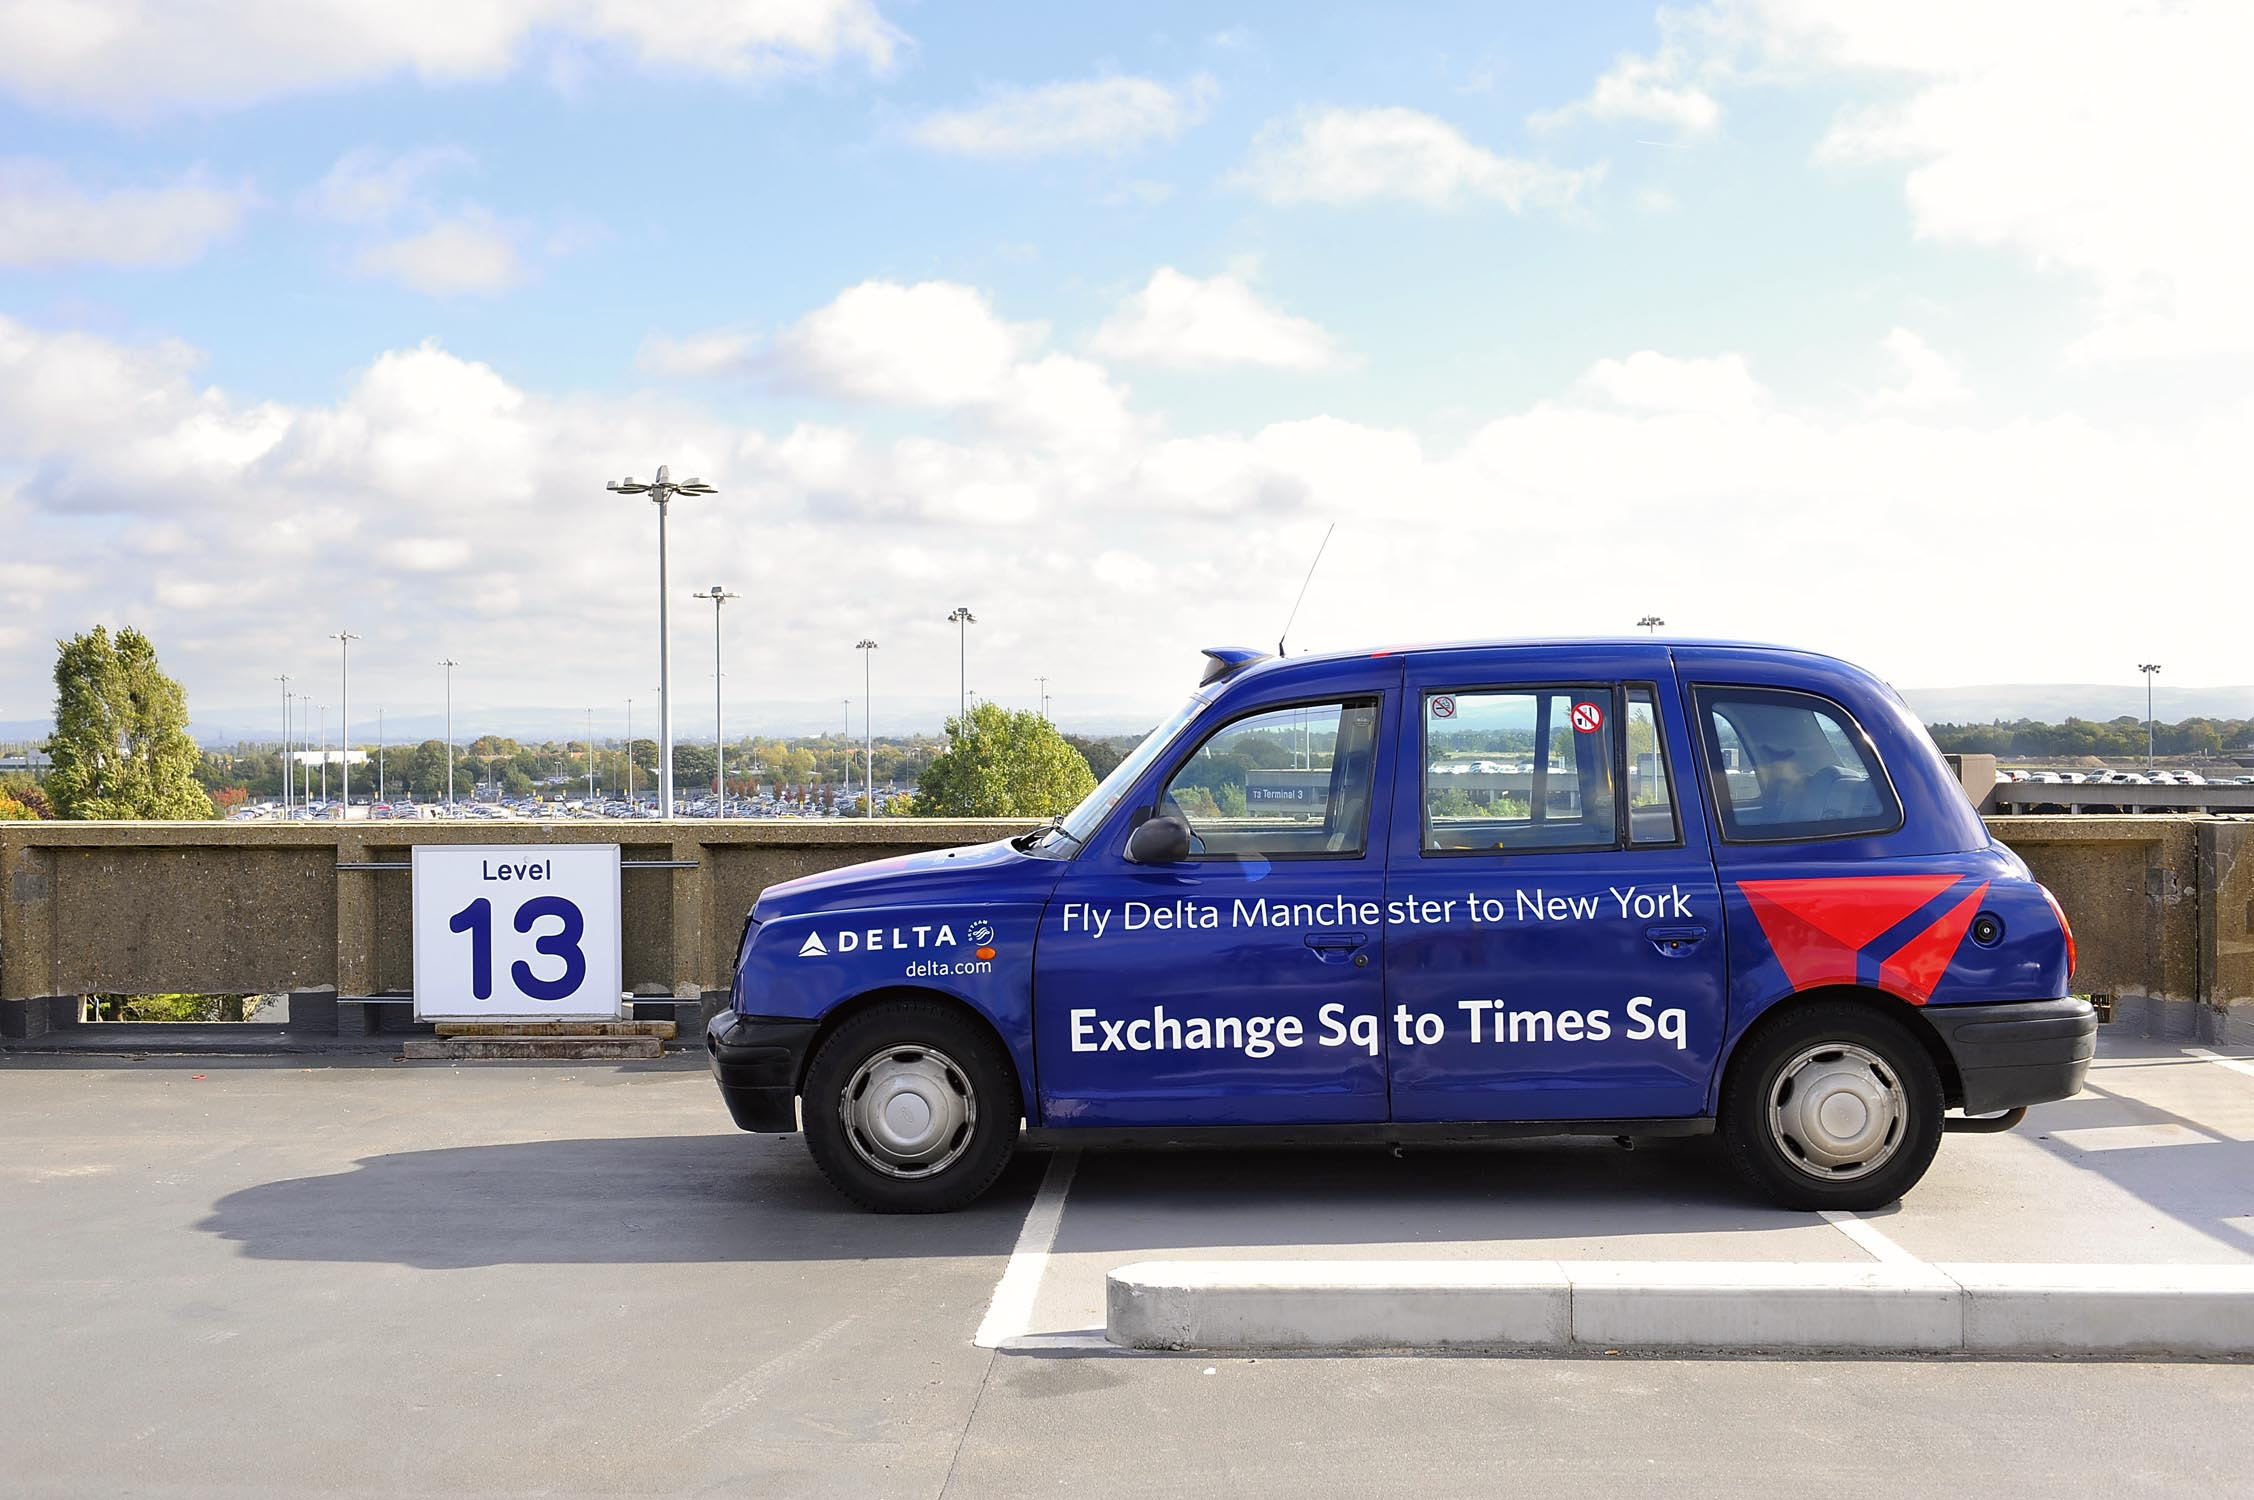 2008 Ubiquitous taxi advertising campaign for Manchester Airport - Delta Airlines